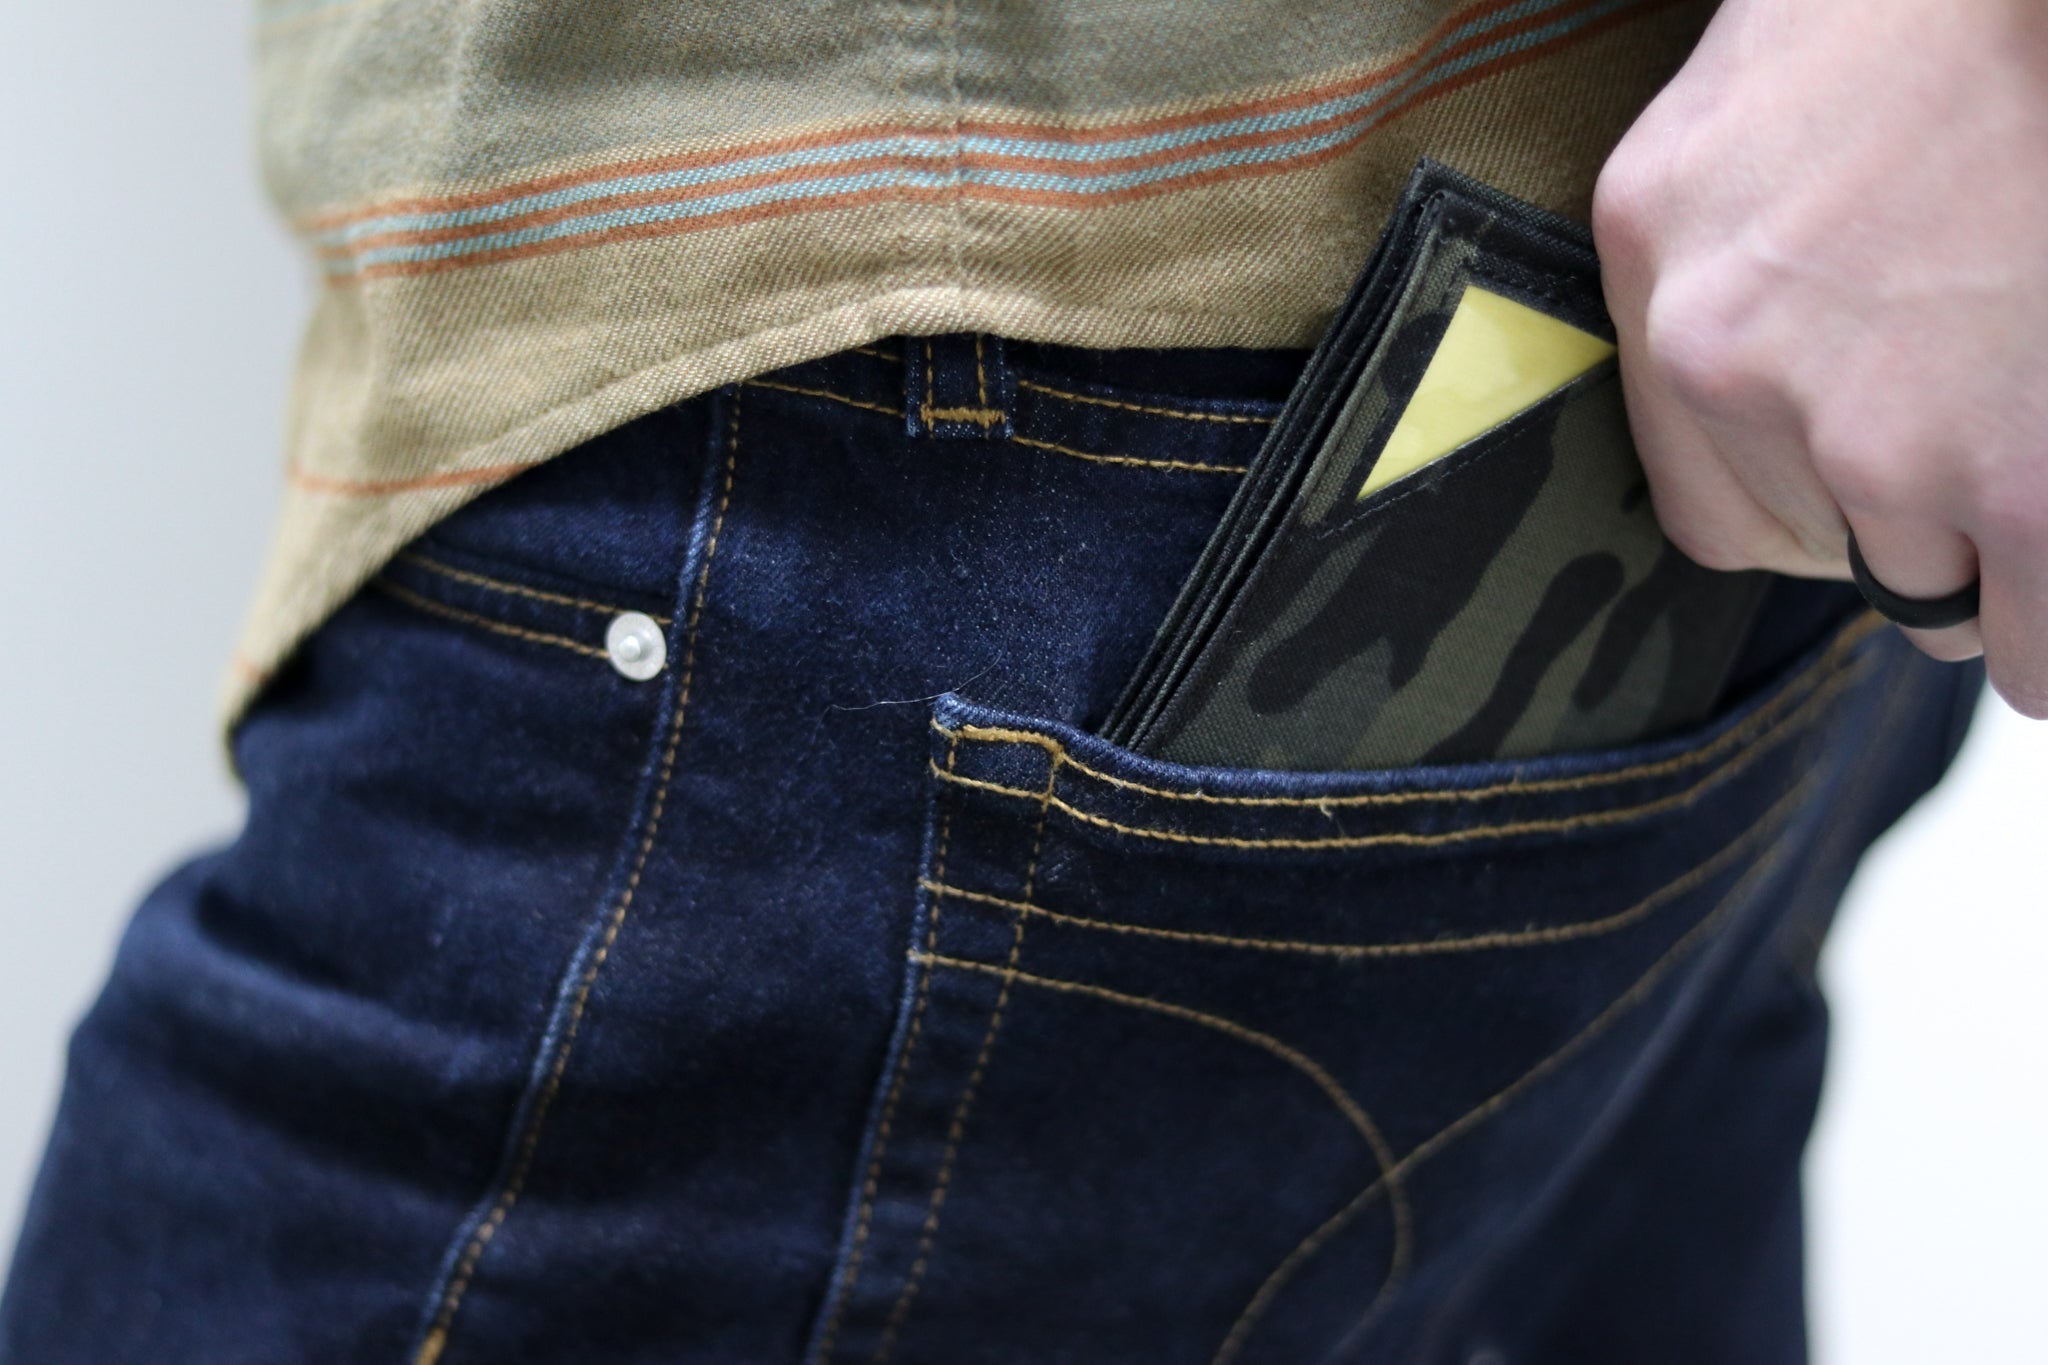 bulletproof wallet fits perfectly in jeans